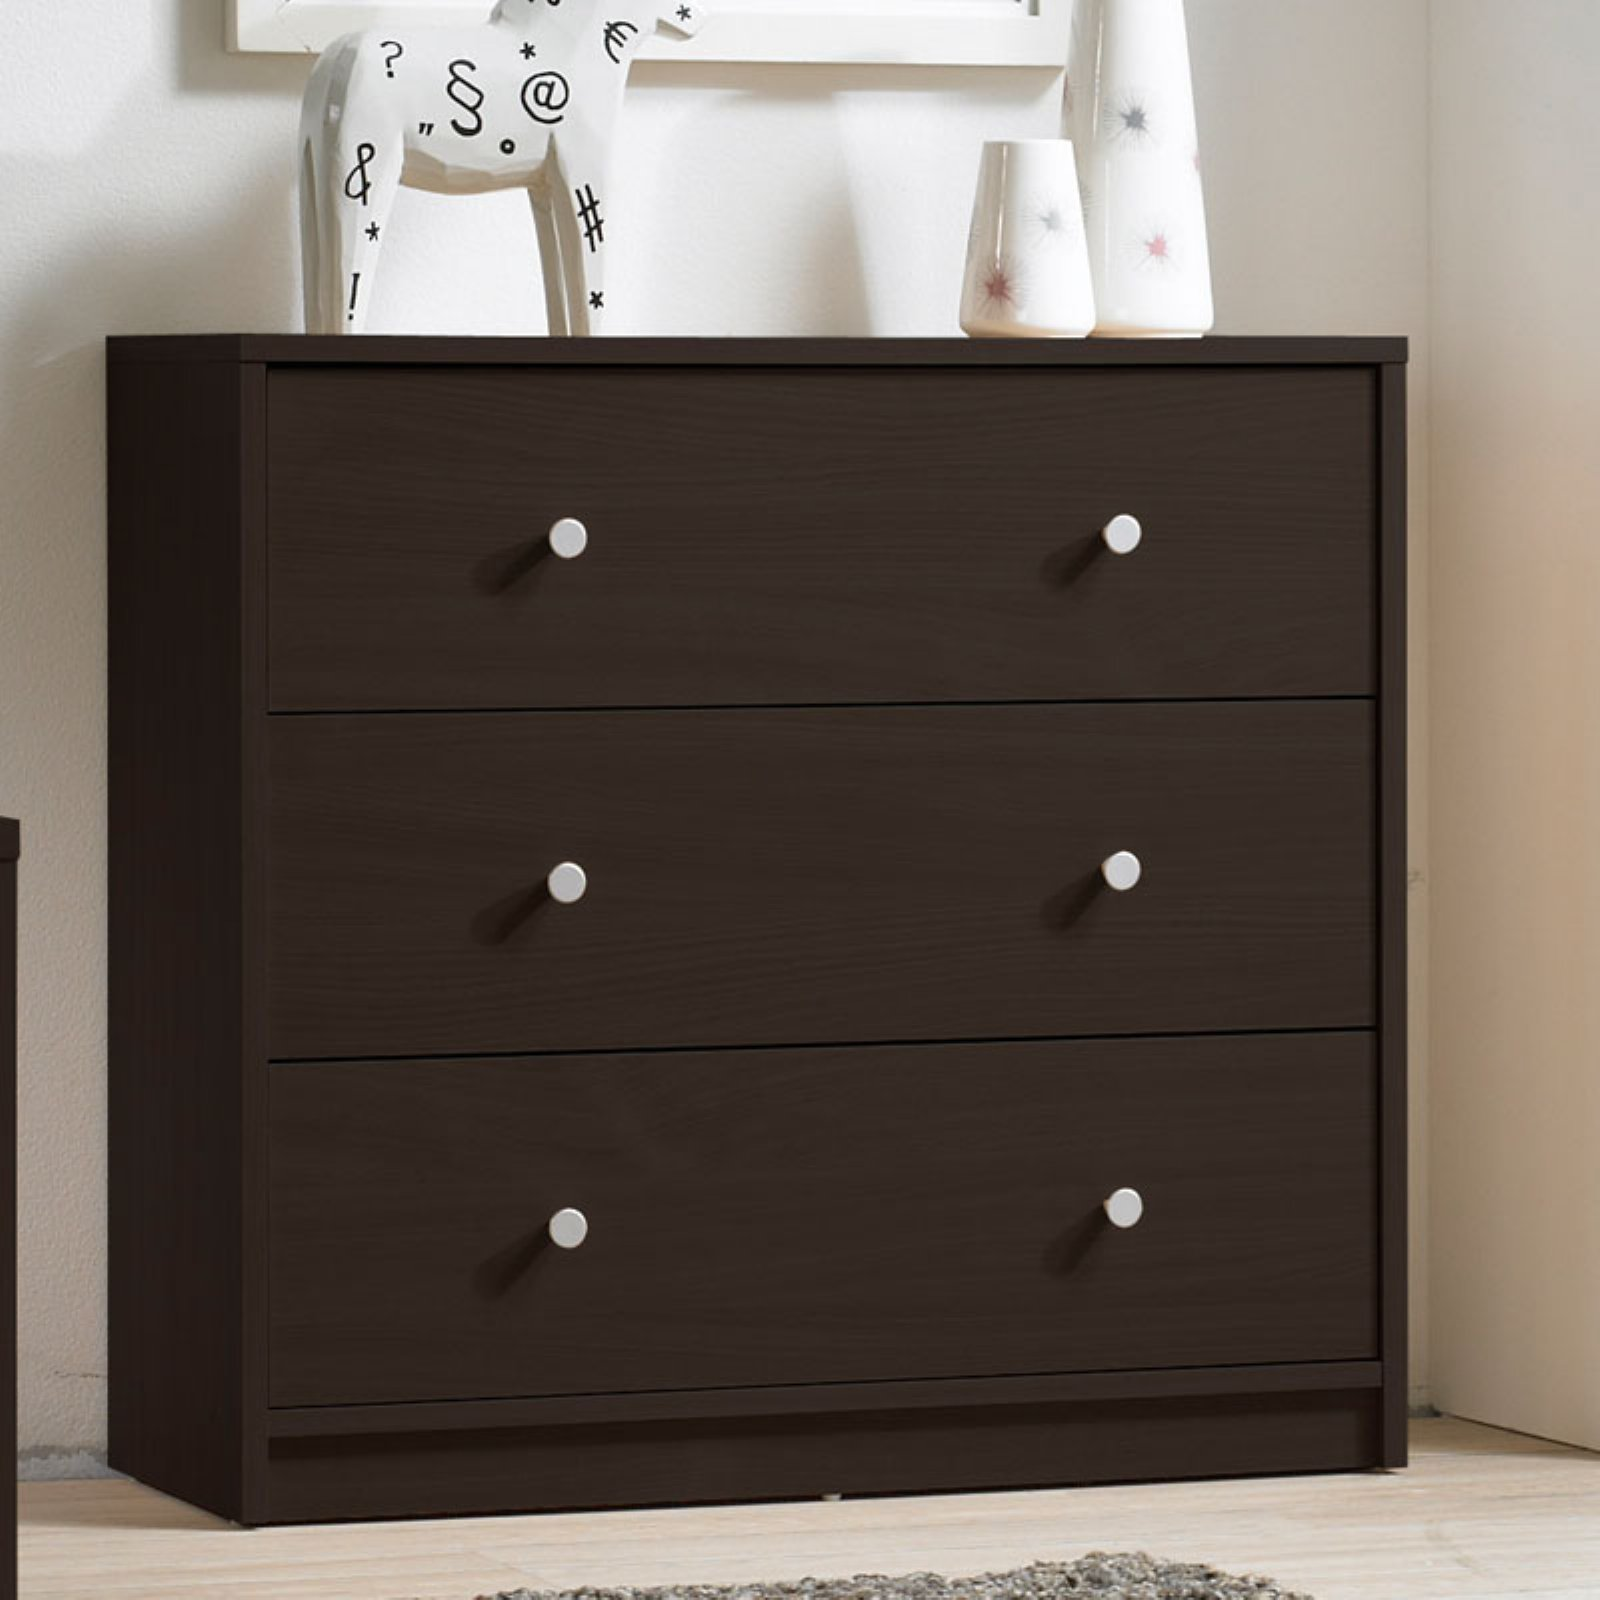 Tvilum Studio Collection 3-Drawer Dresser, Multiple Colors